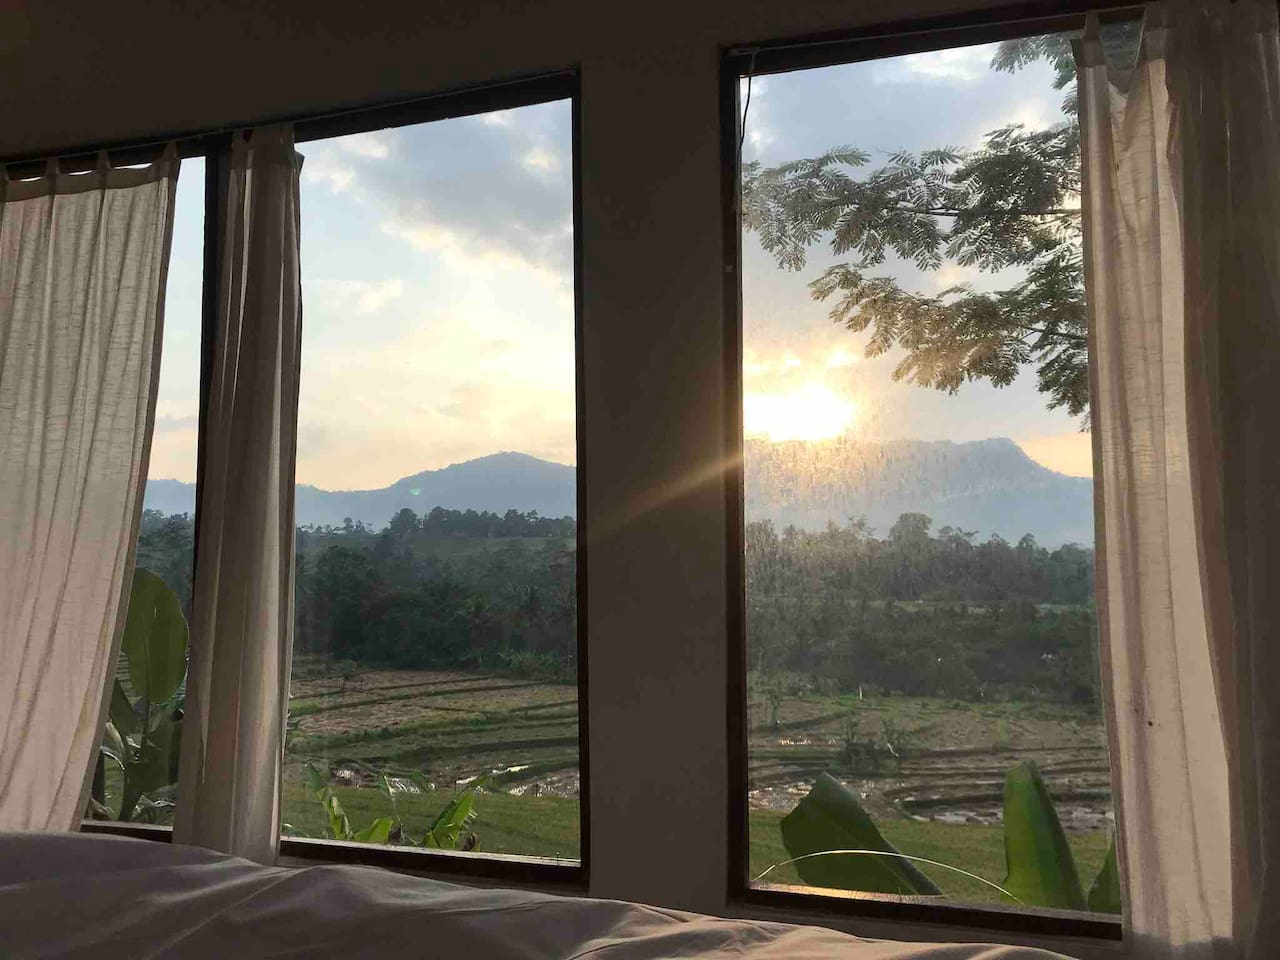 Real life view from the bed in room 3. All rooms are equipped with glass windows and have wonderful mountain views.